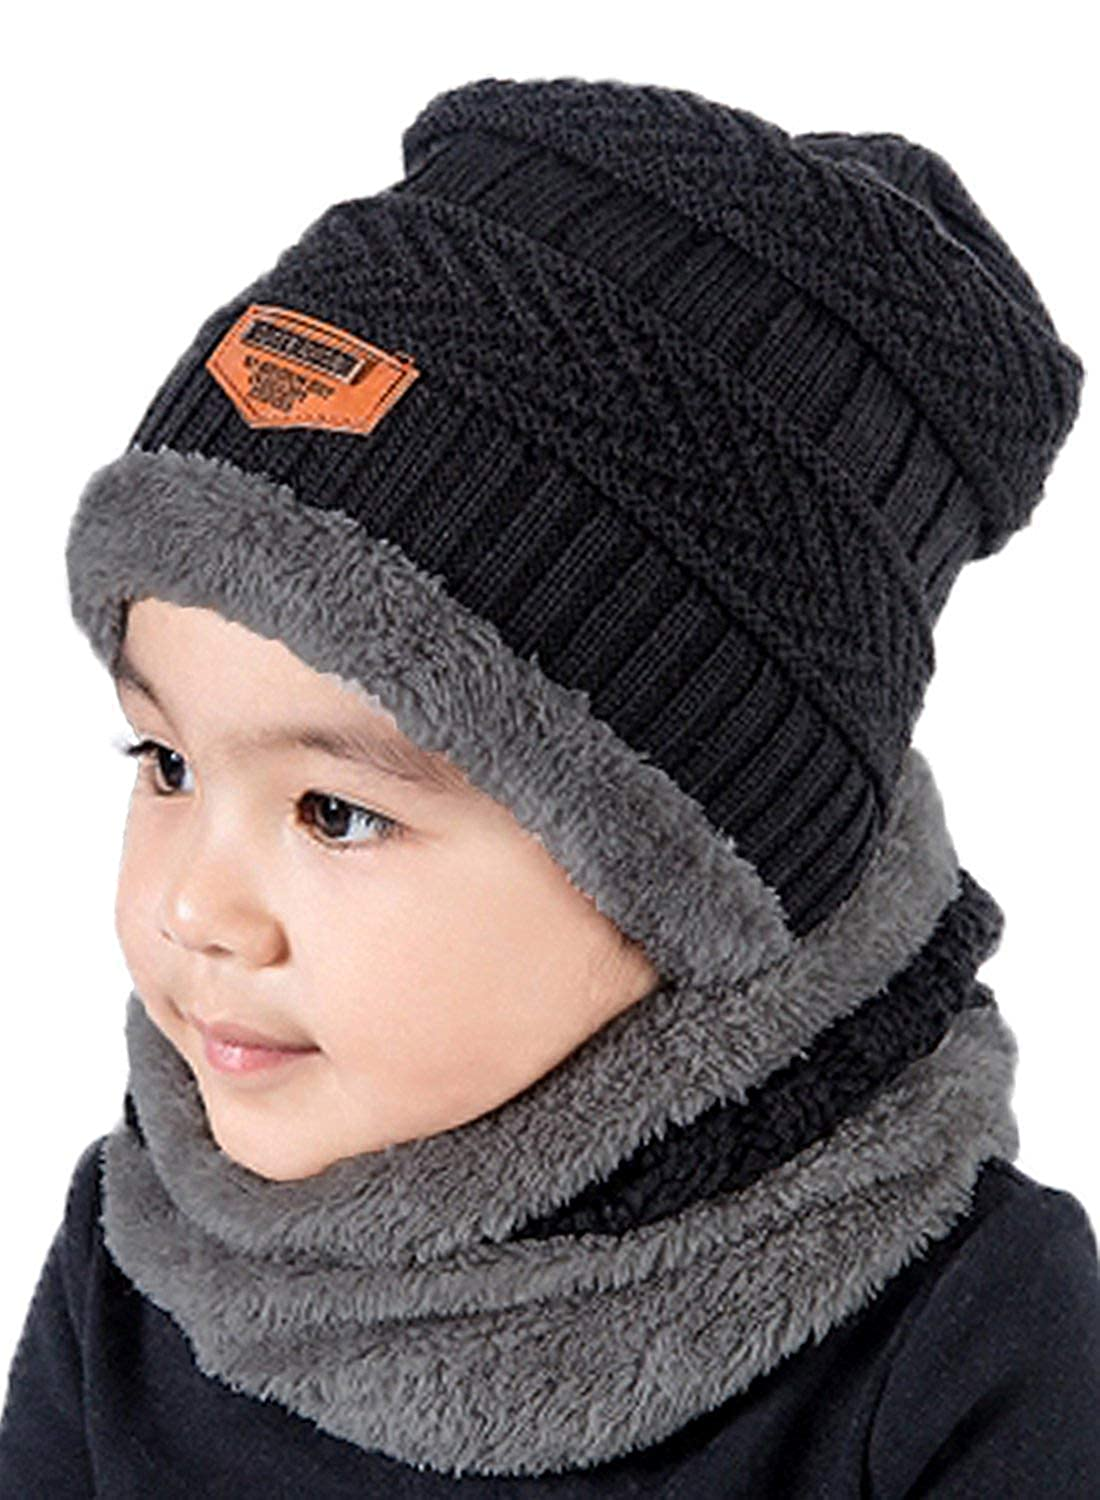 B Malaxlx Winter Beanie Hat Circle Scarf Skiing Set Wool Warm Knit Hat Thick Skull Outdoor Sports Cap for Baby Boys Girls Child